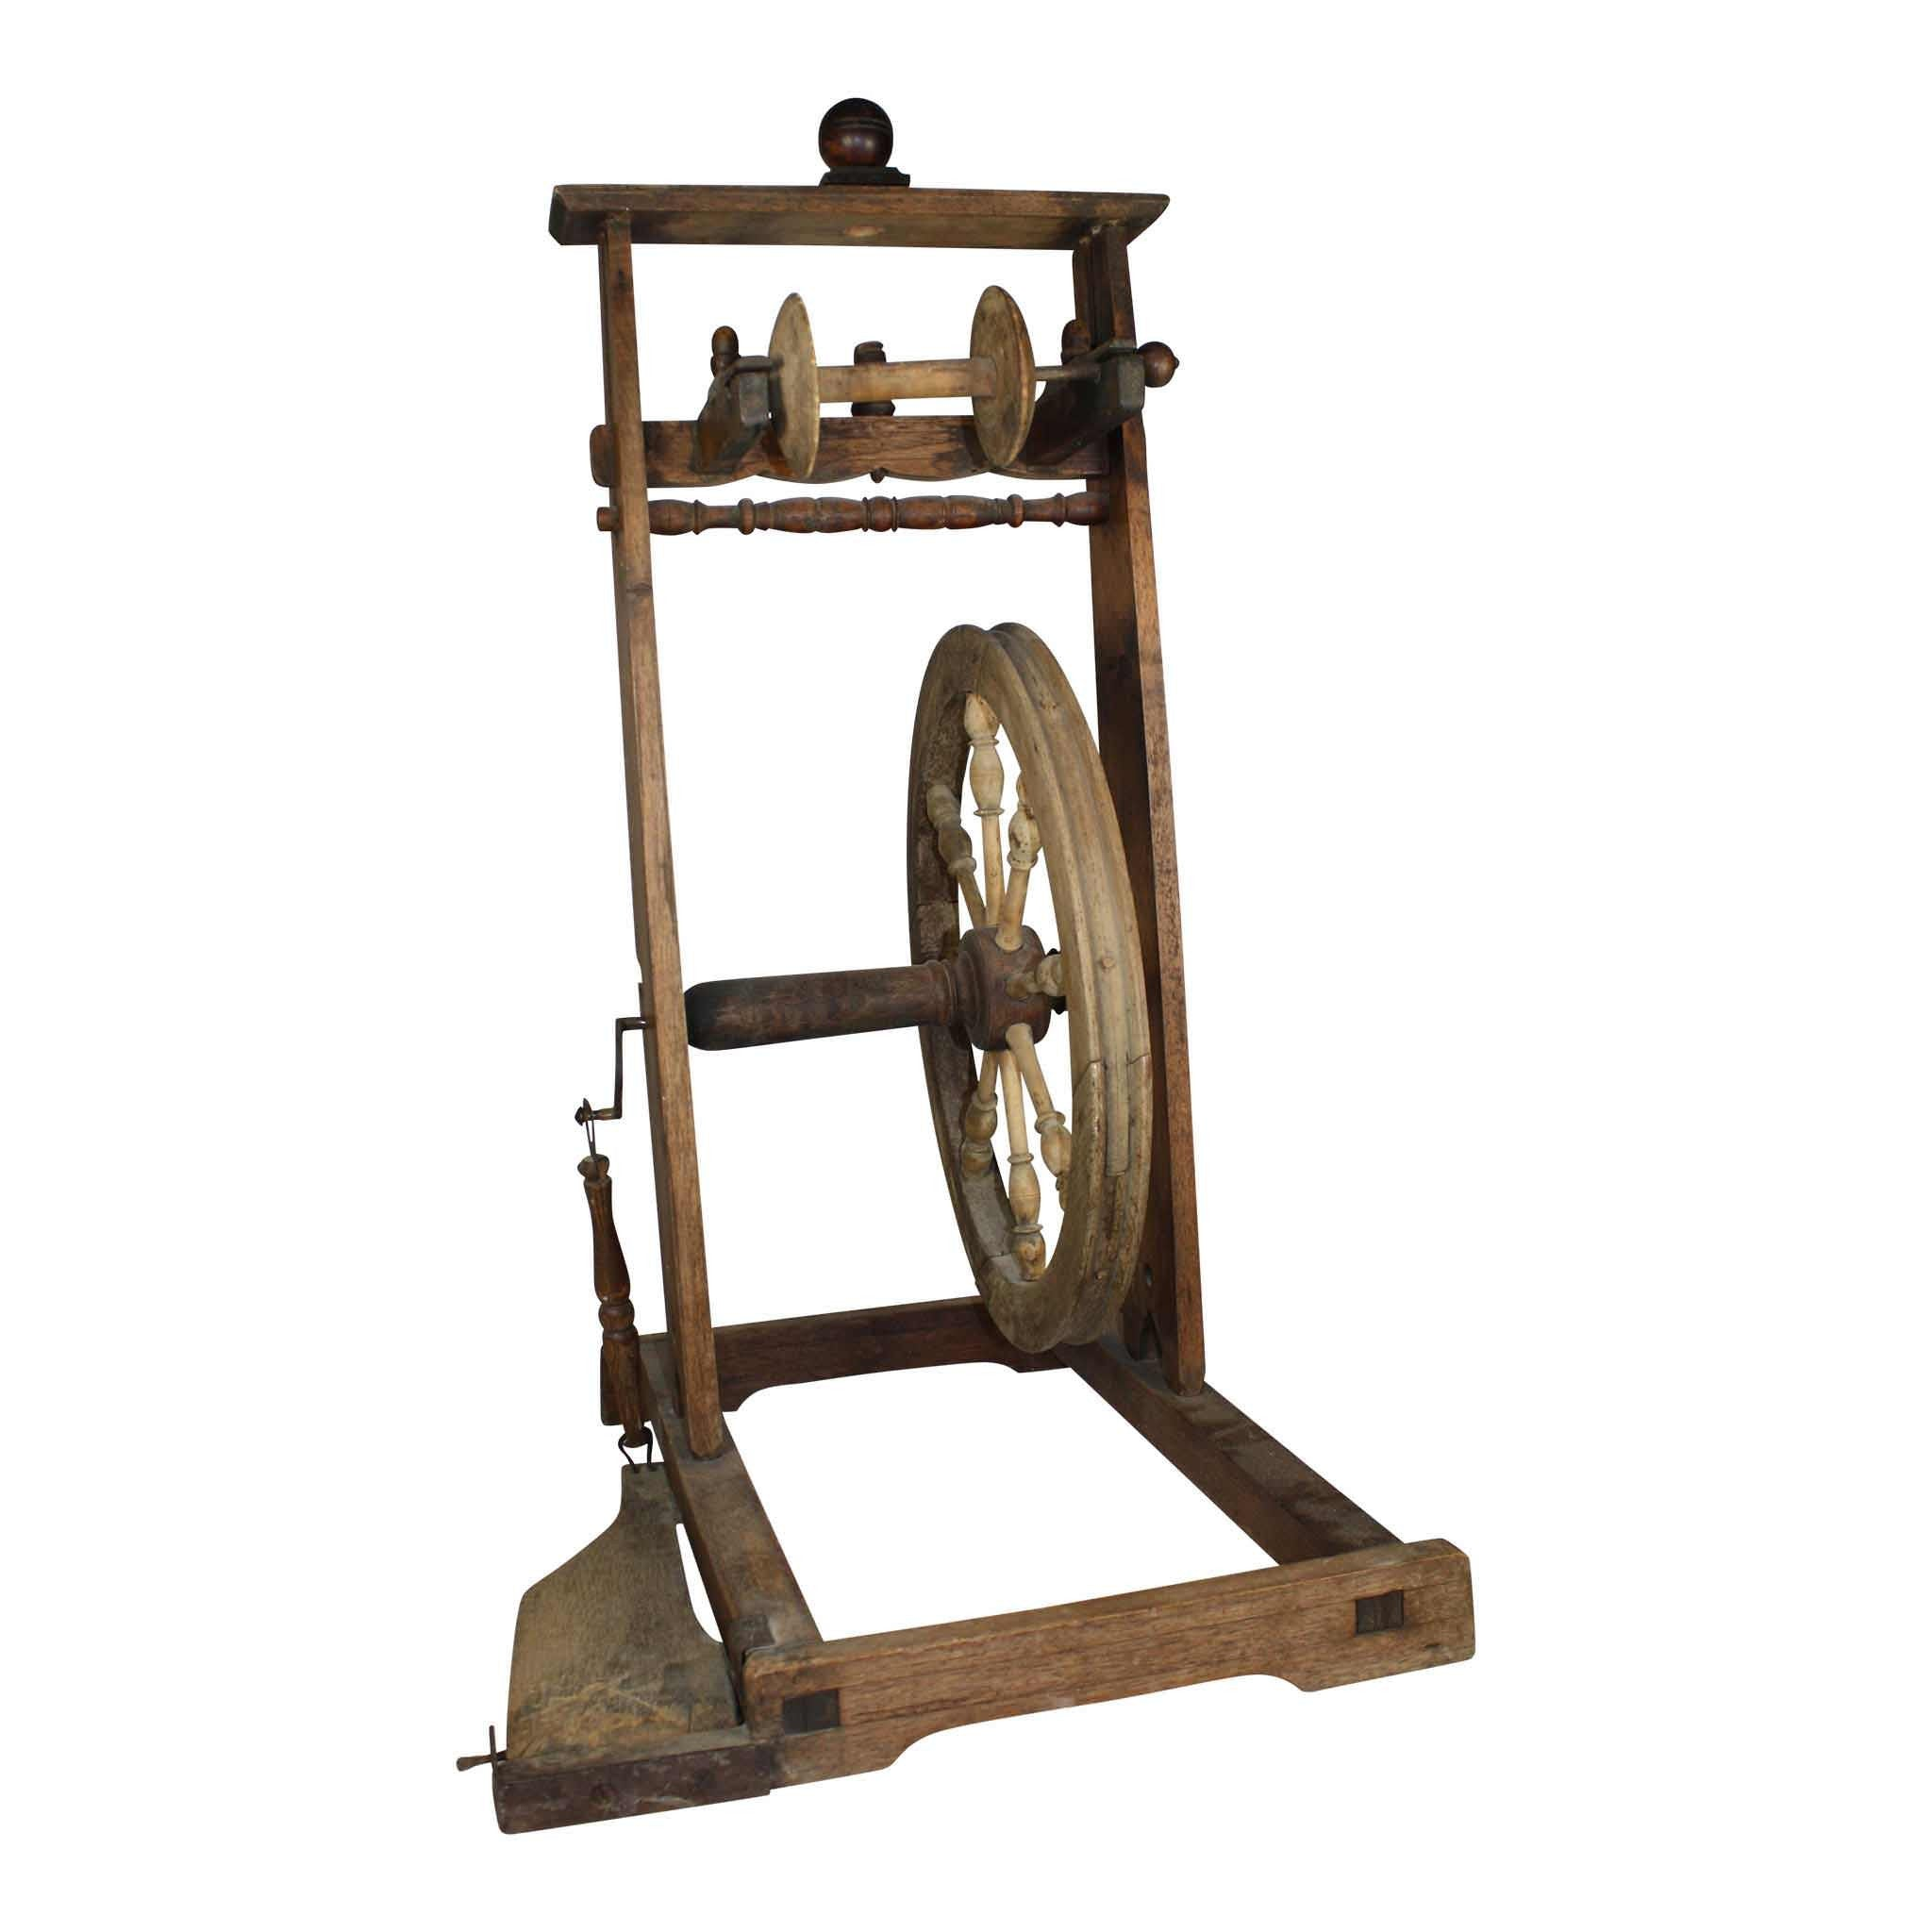 Upright Castle Spinning Wheel